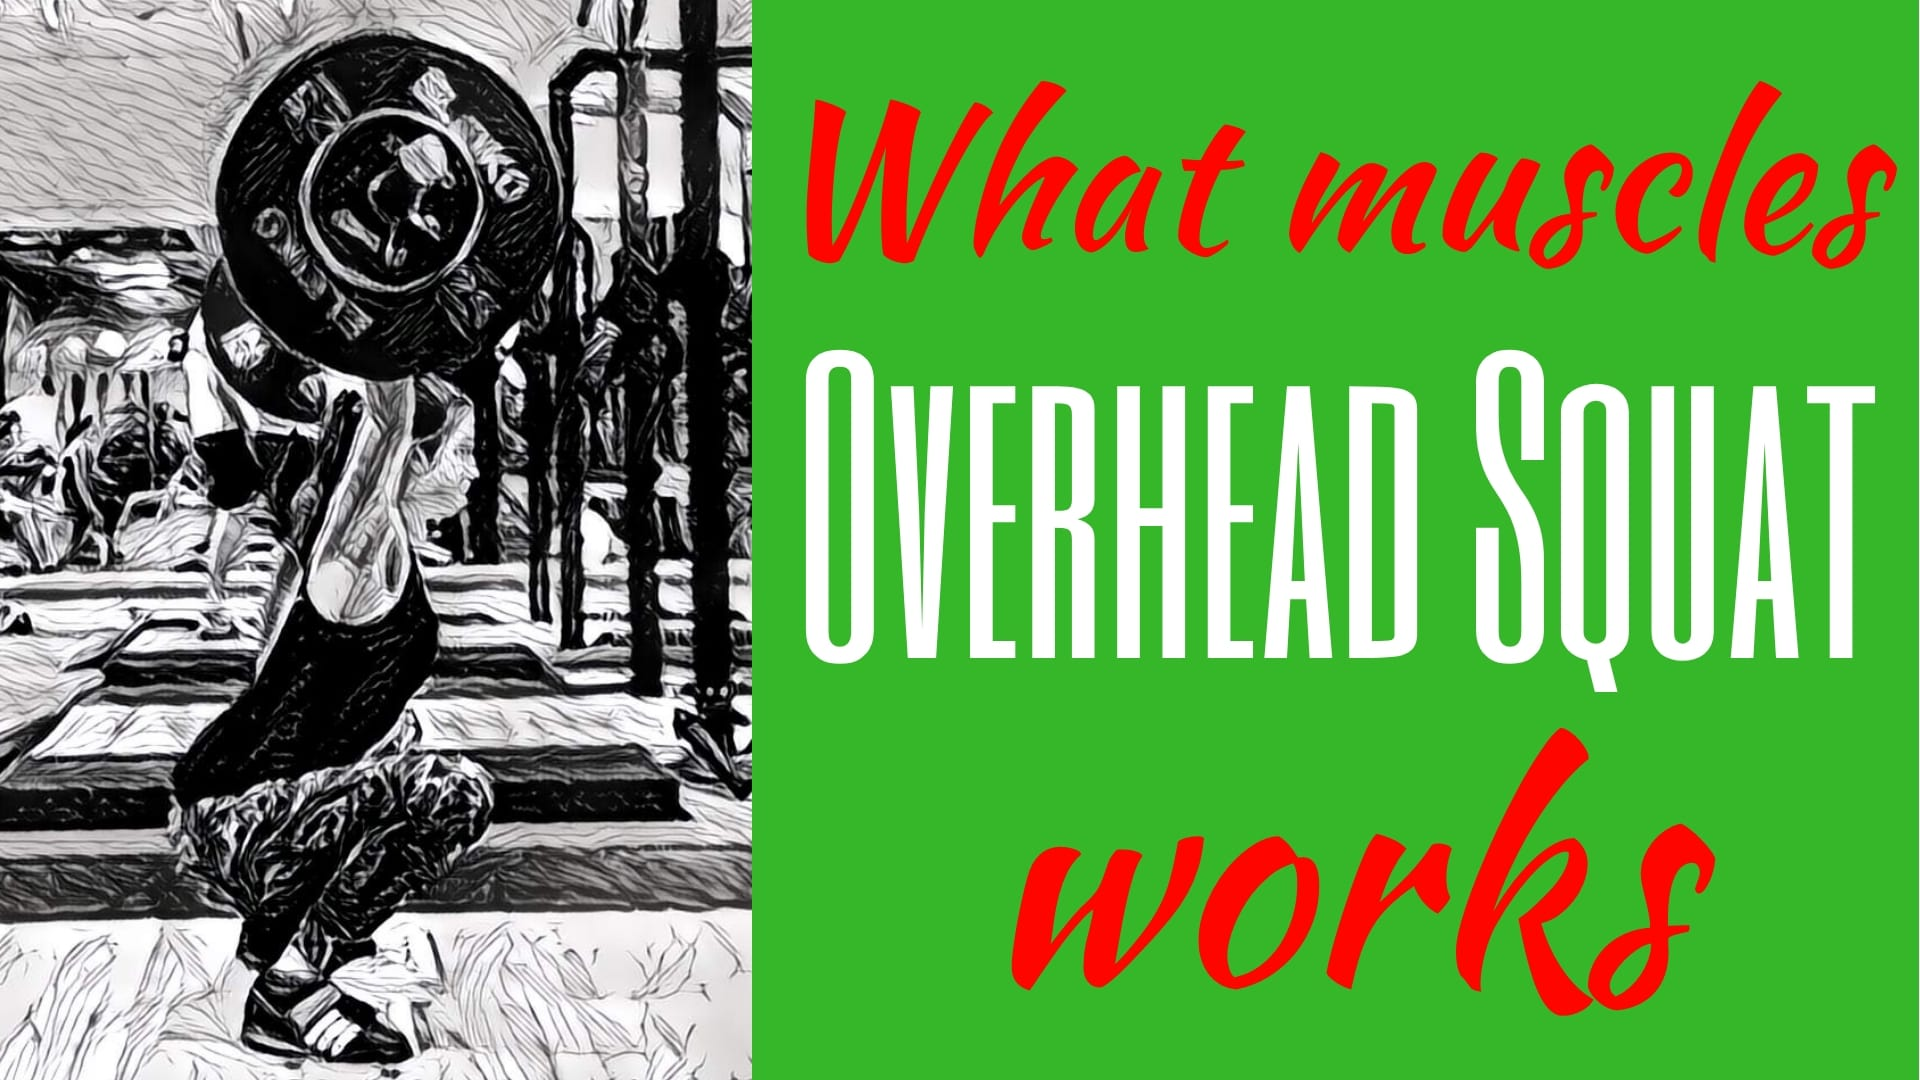 Overhead-Squat-muscles-worked-What-muscles-do-Overhead-Squats-work